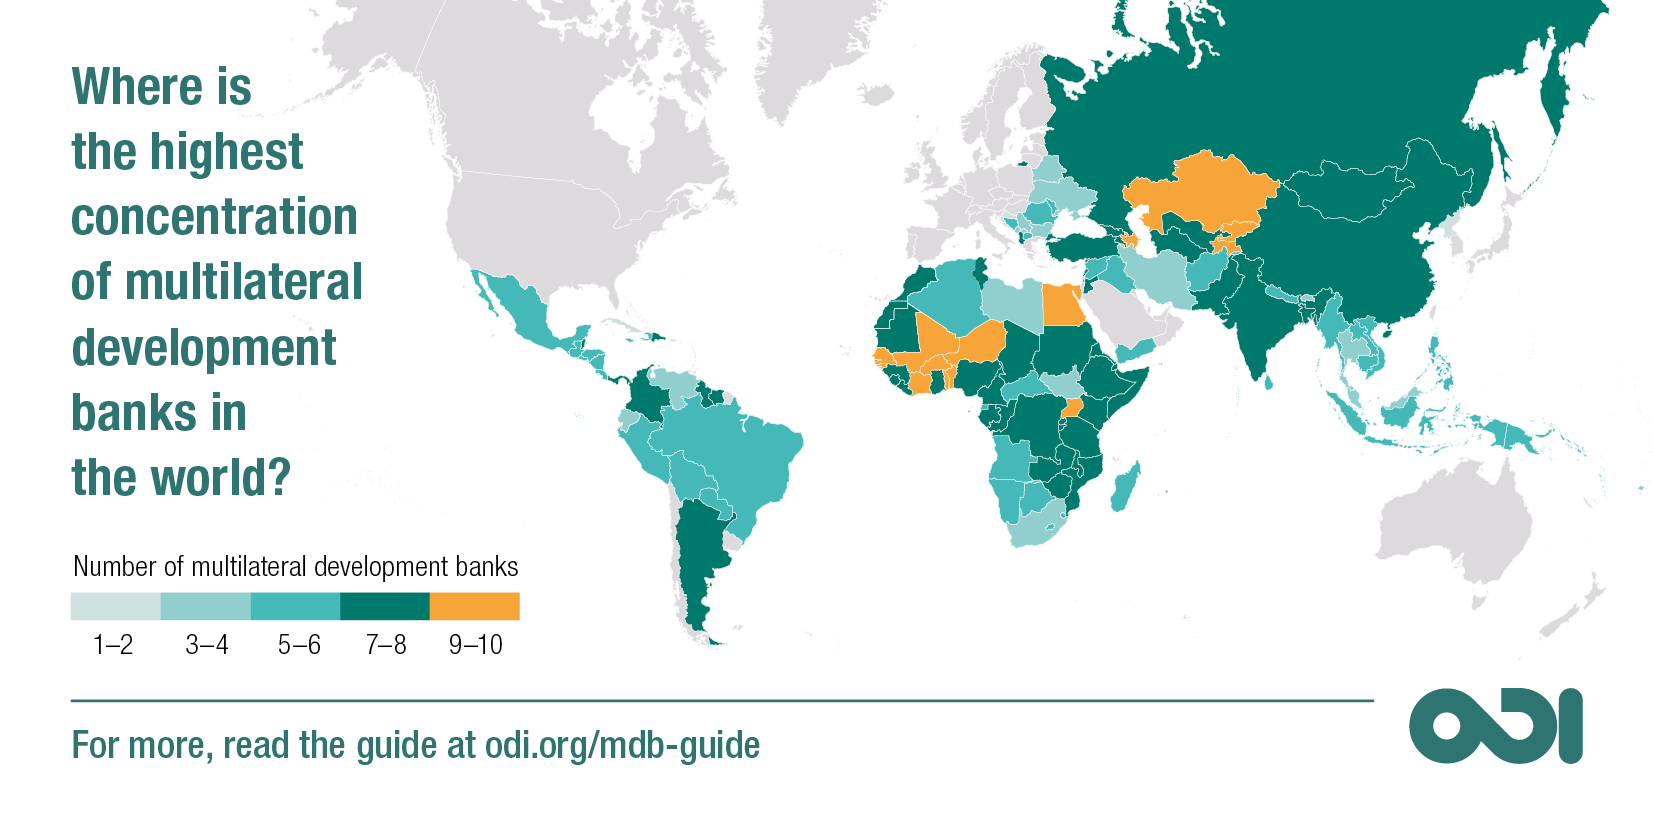 Where is the highest concentration of multilateral development banks in the world?